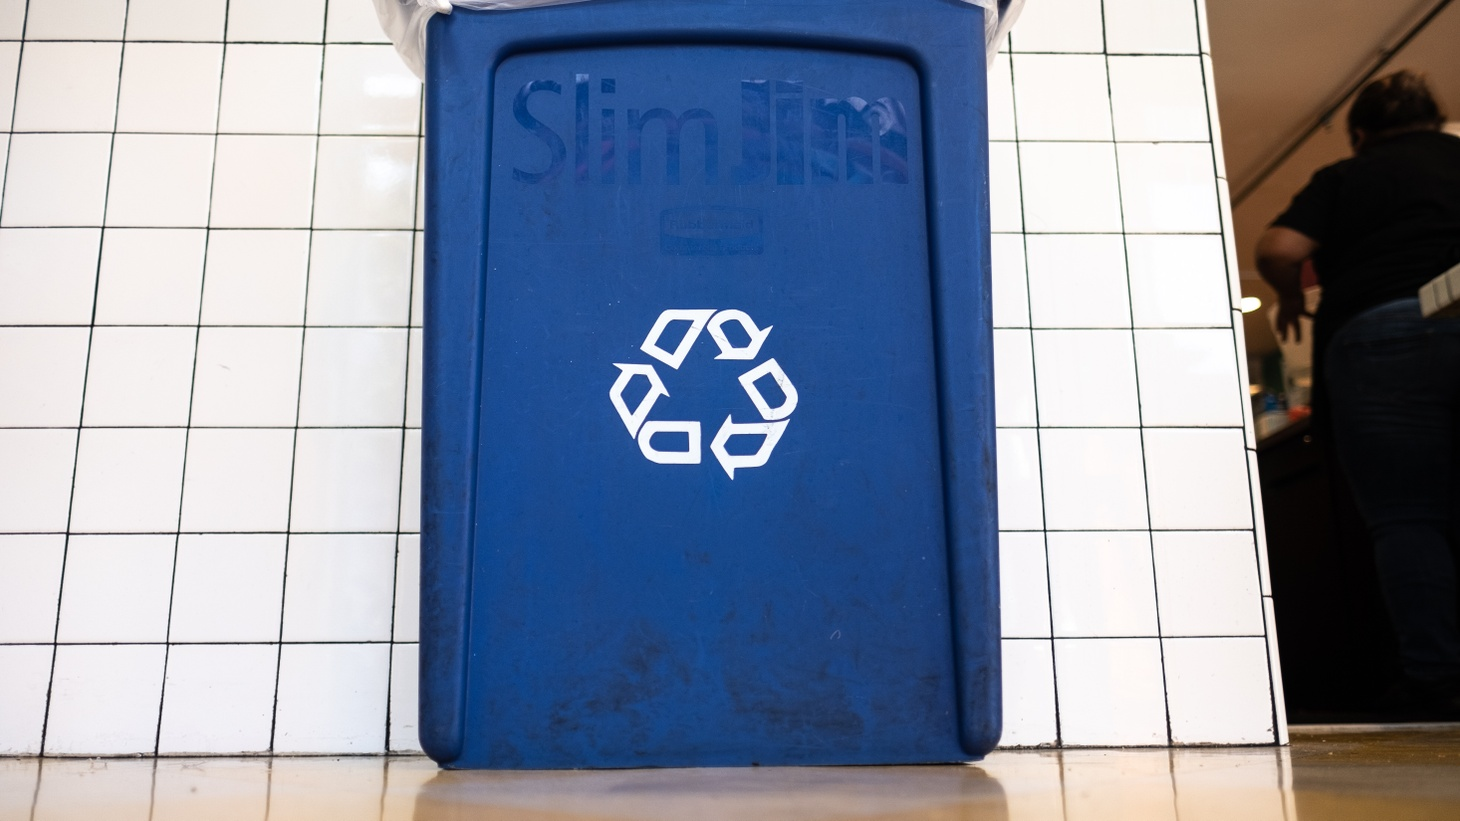 A recycling bin at Sonoratown restaurant in downtown LA.